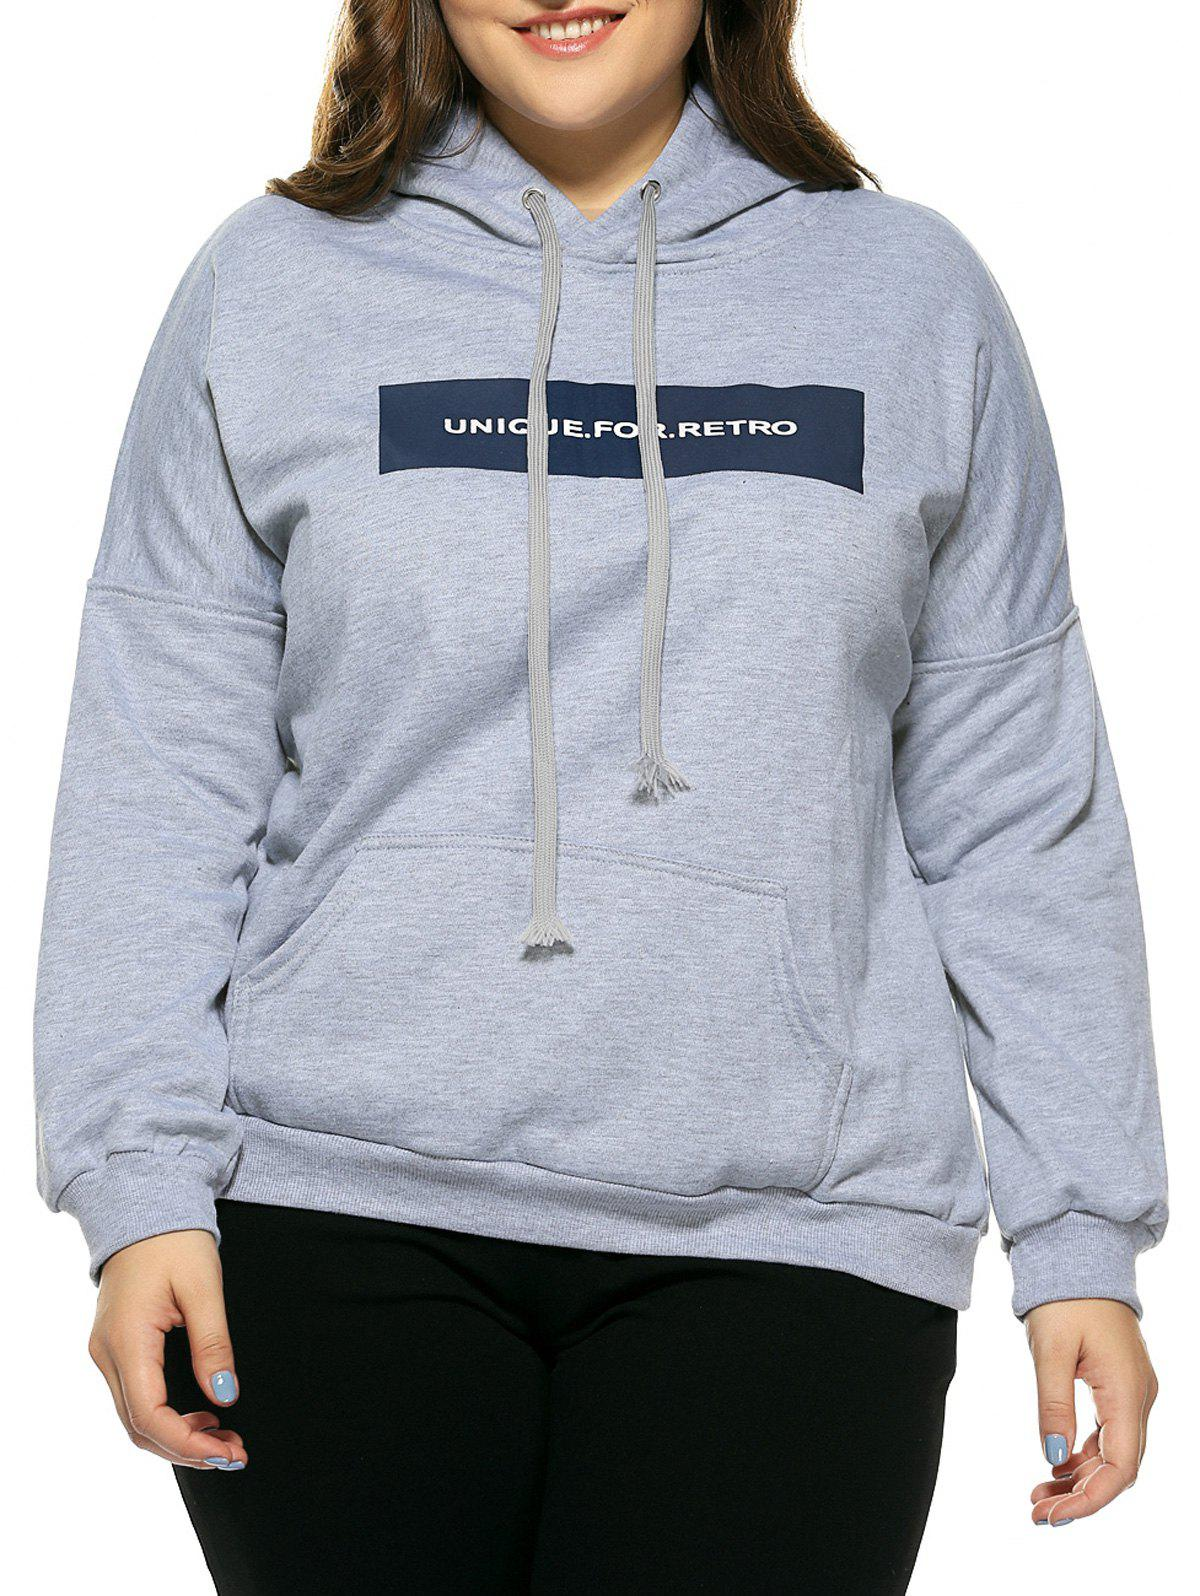 Plus Size Hooded Long Sleeve Letter Hoodie - GRAY 3XL